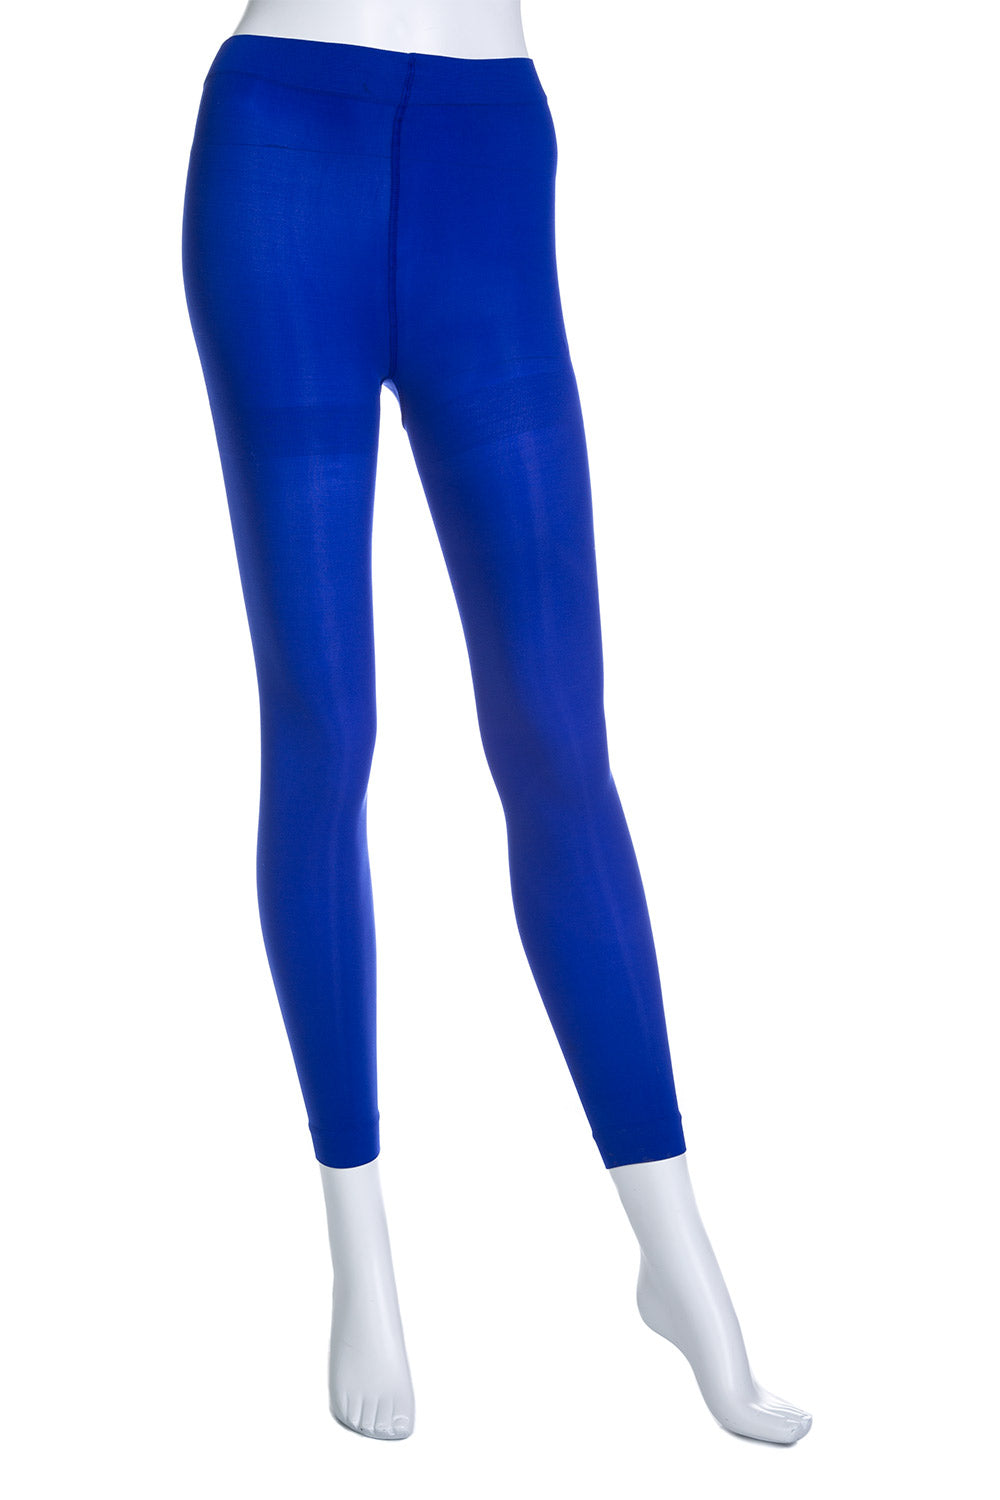 Type 4 Righty Tighty Tights In Royal Blue